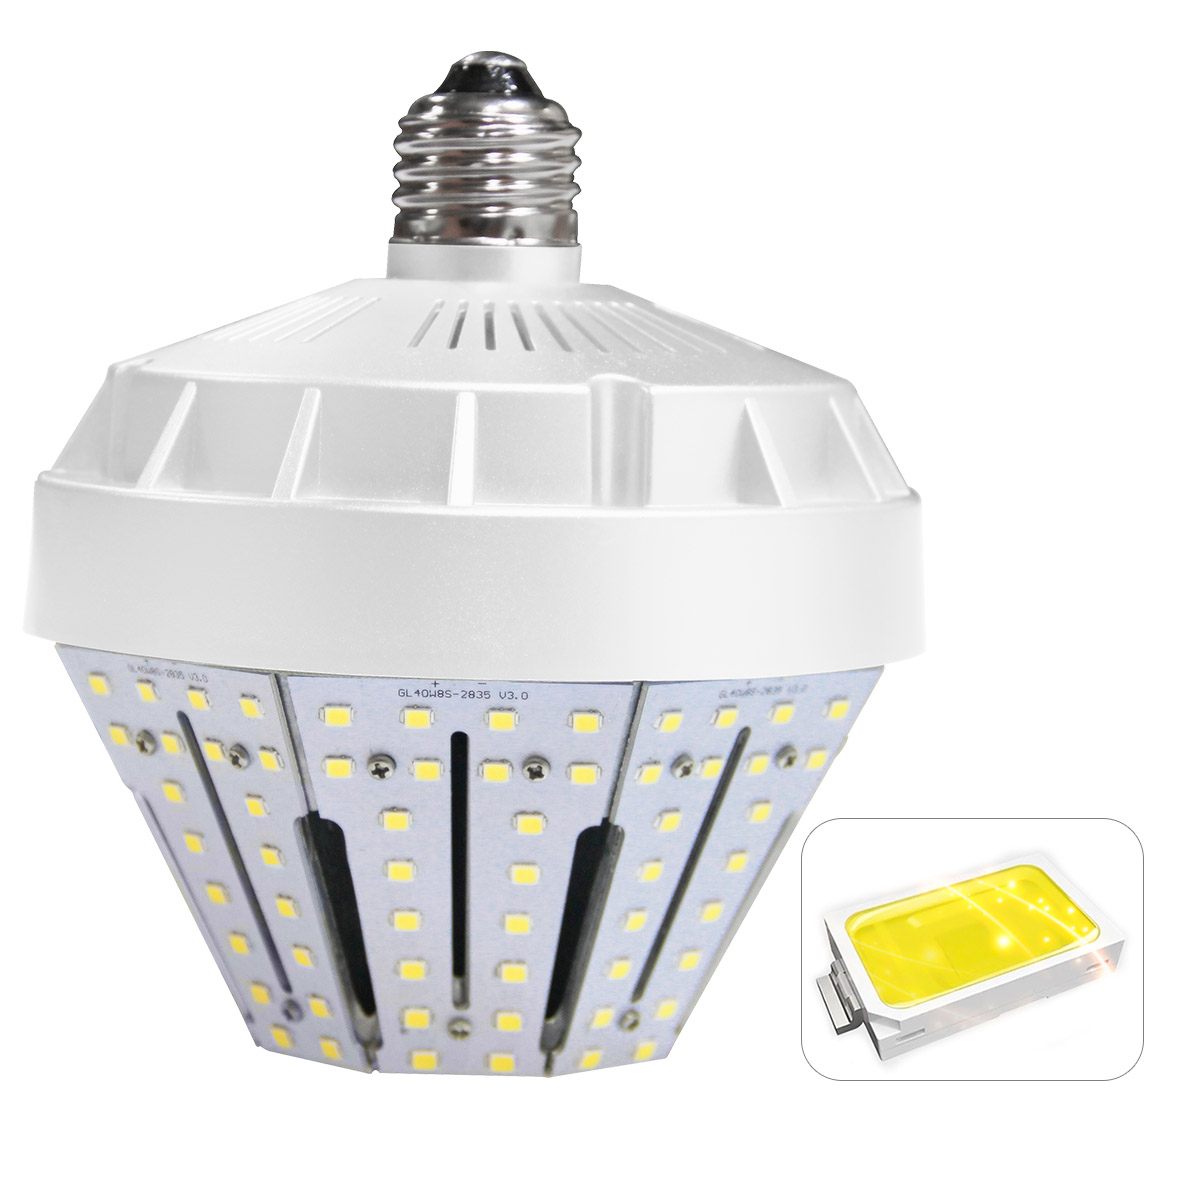 KAWELL 30W LED Corn Light,E26 4500Lm 3200K (Warm White) Replacement for Fixtures HID/HPS for Indoor Outdoor Large Area Home Street Lamp Lighting Factory Warehouse High Bay Barn Porch Backyard Garden